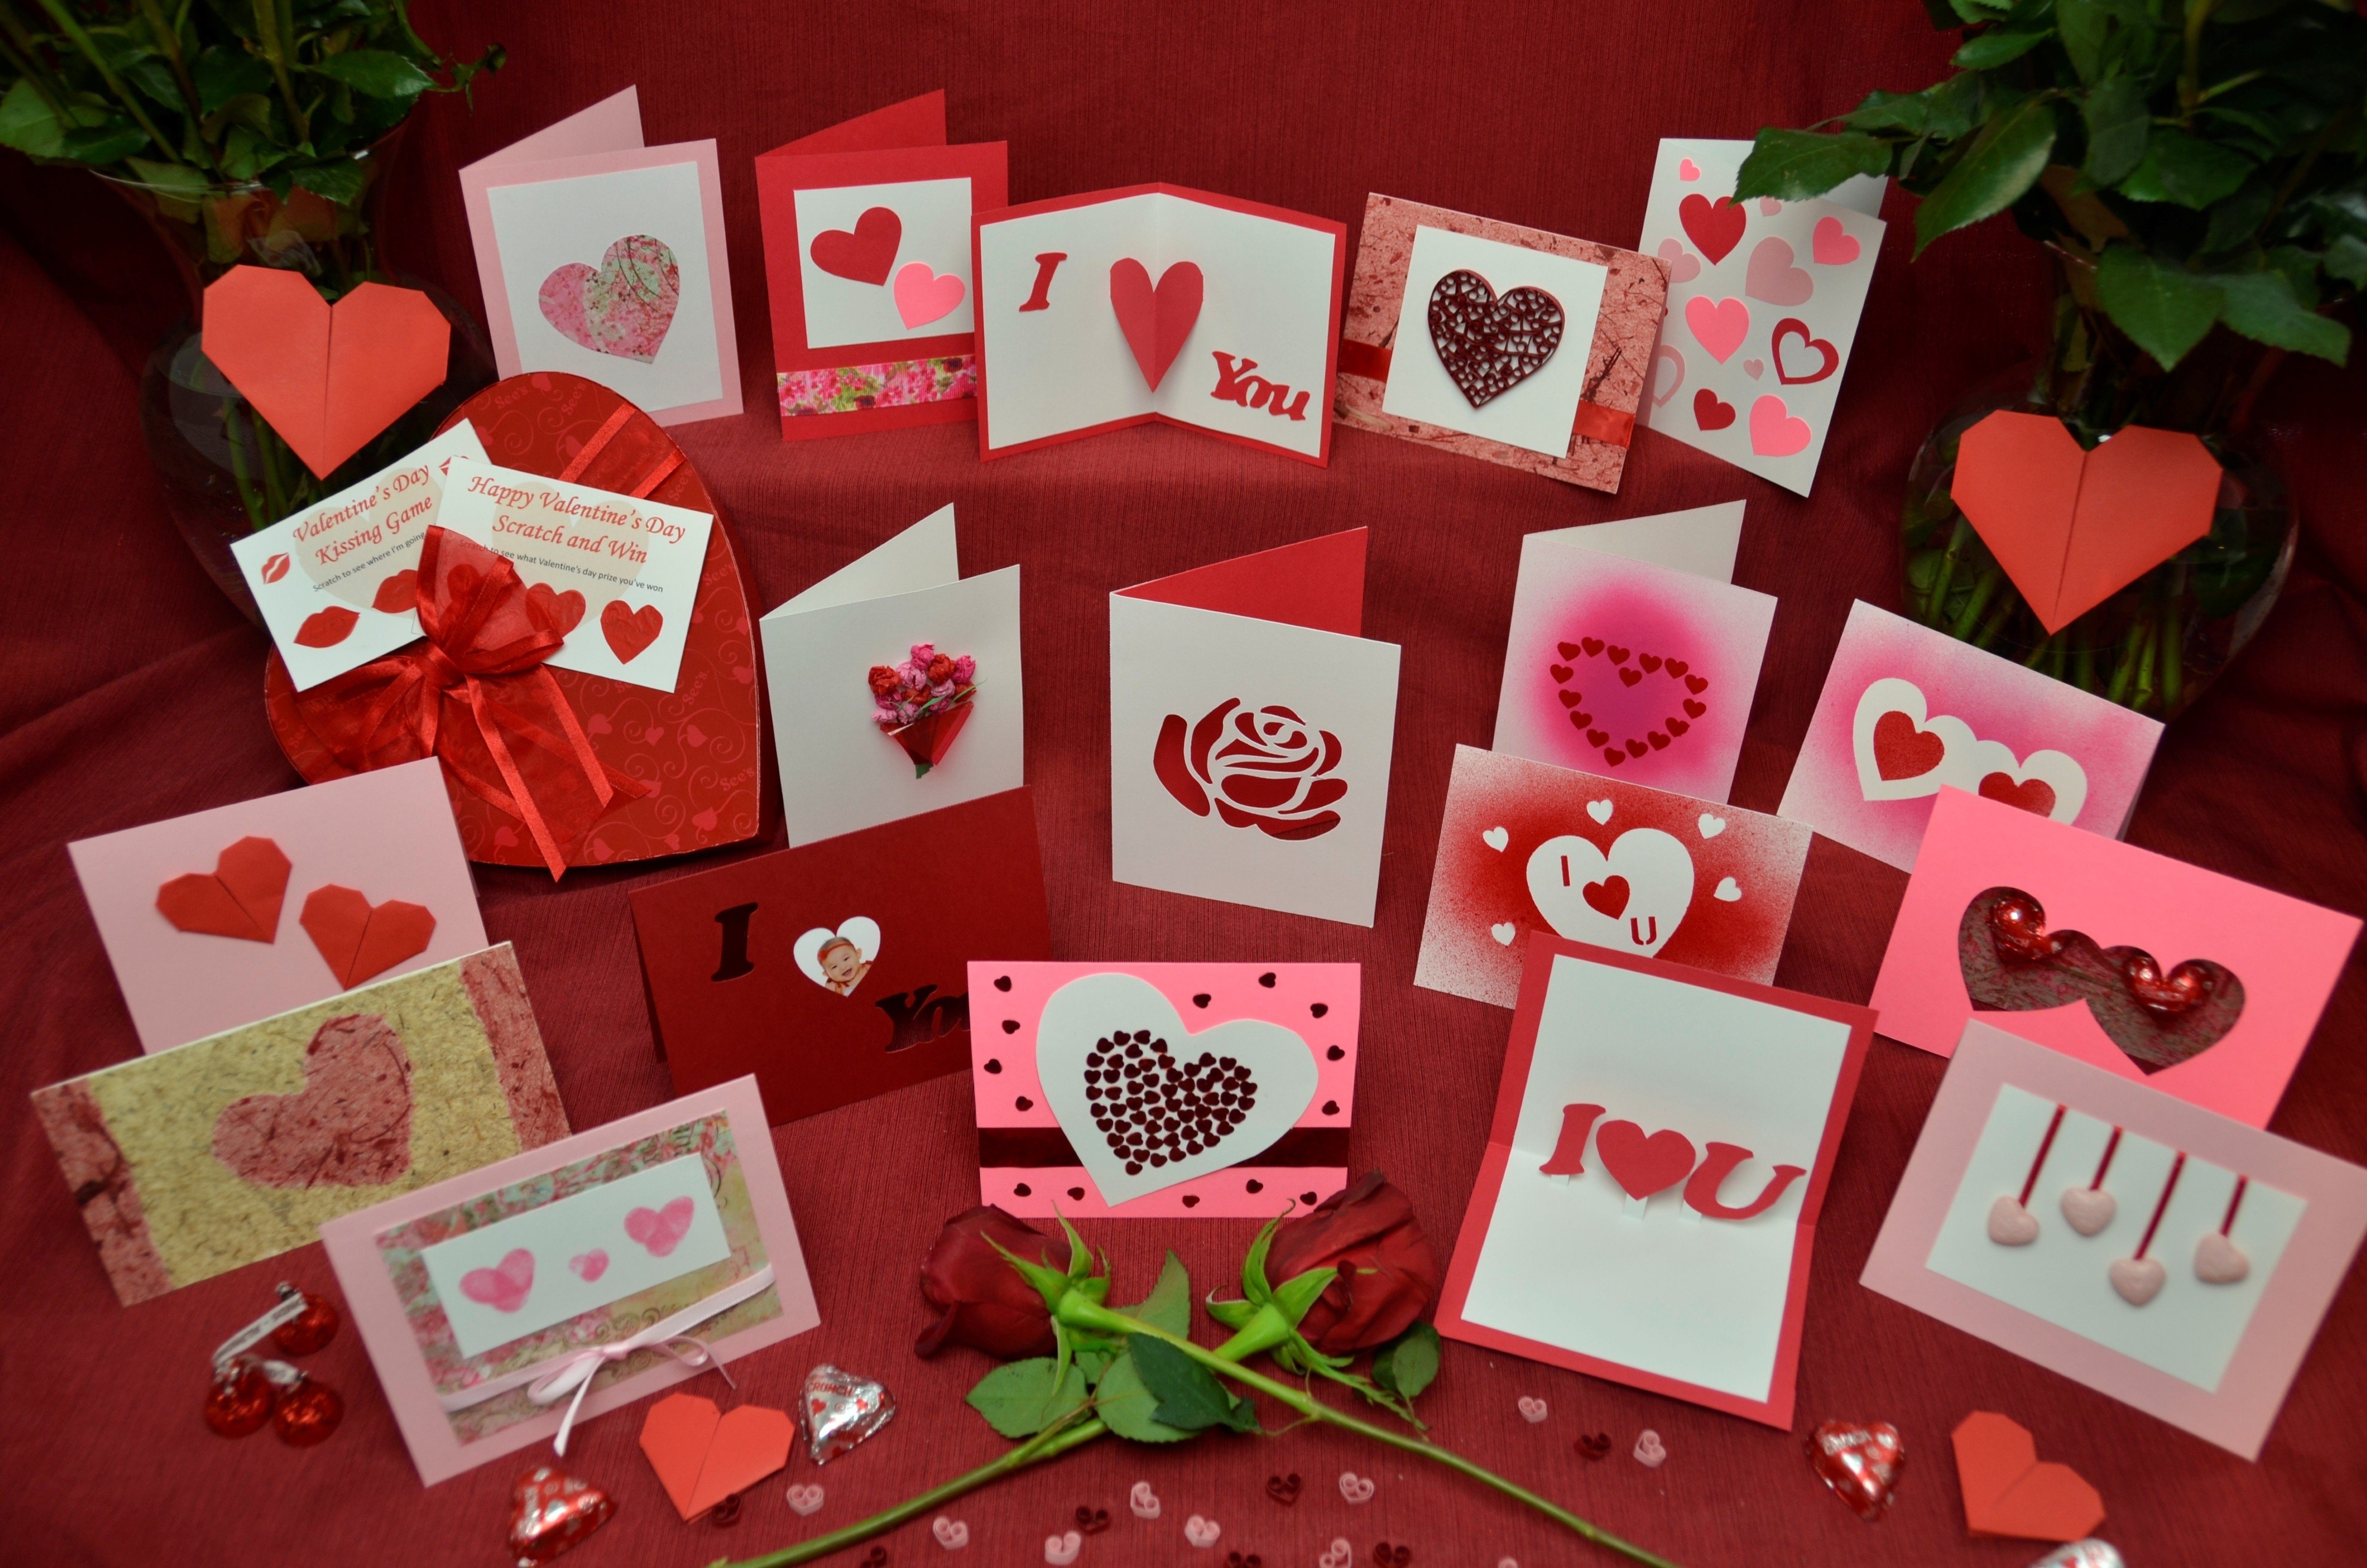 10 Attractive Creative Valentines Day Ideas For Girlfriend top 10 ideas for valentines day cards creative pop up cards 4 2020